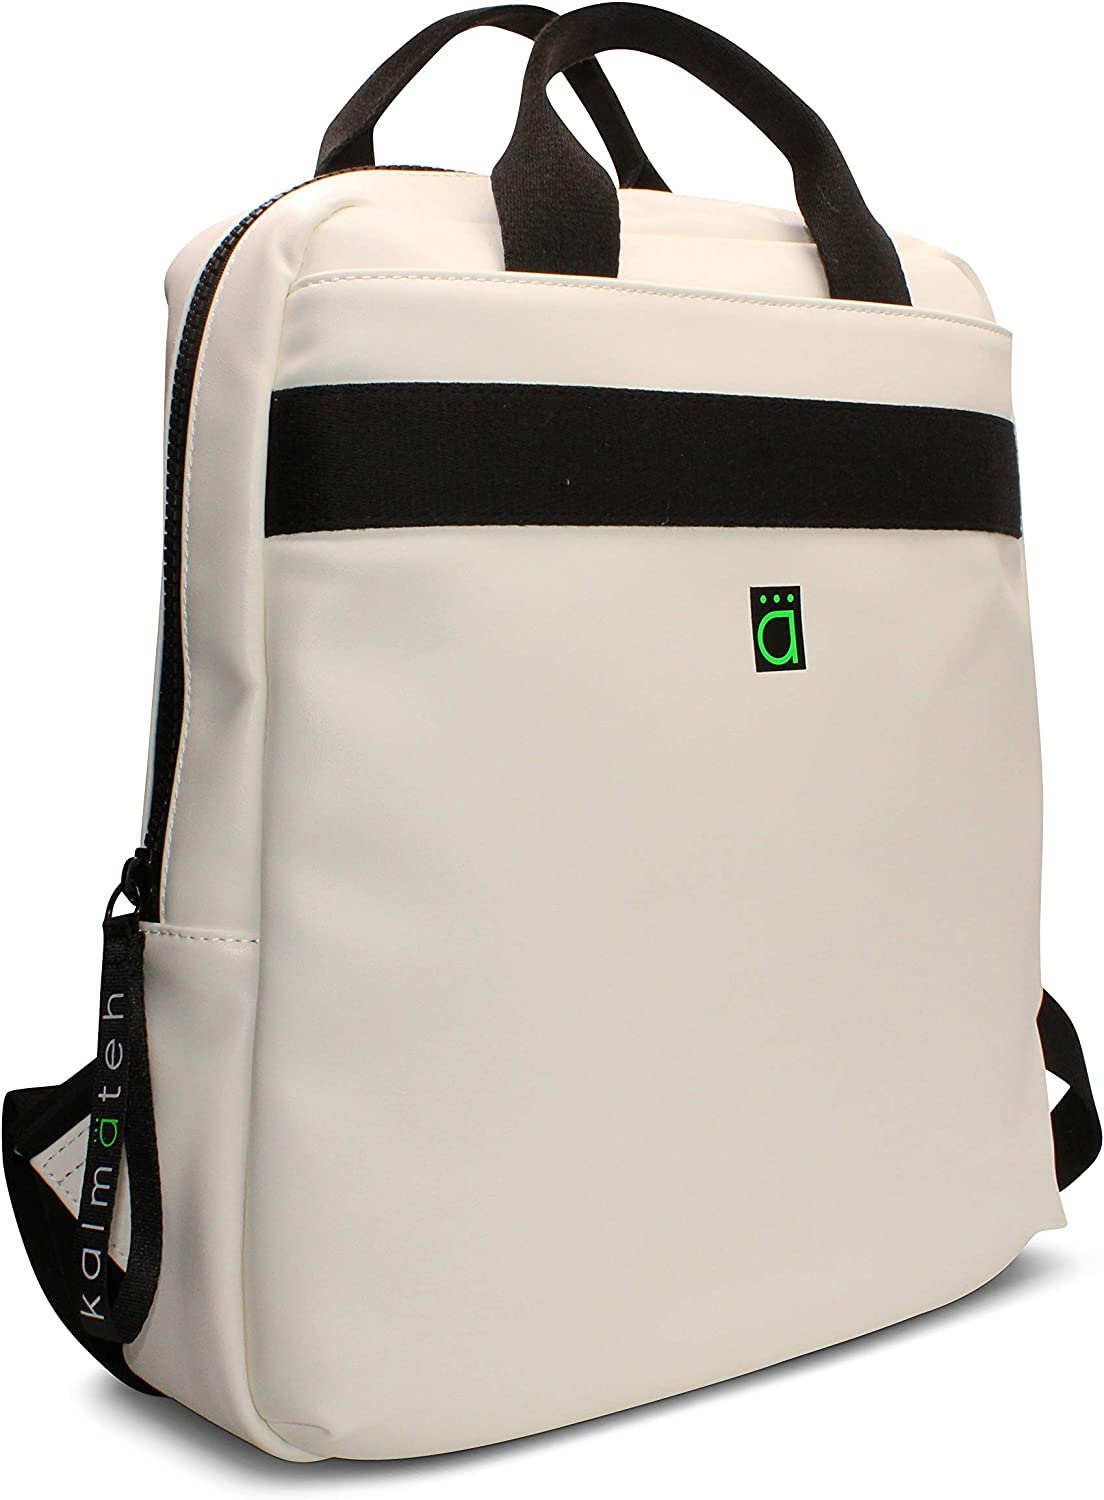 KALMATEH Travel Matera Tote Backpack Men Modern Bag Large-scale sale for NEW before selling